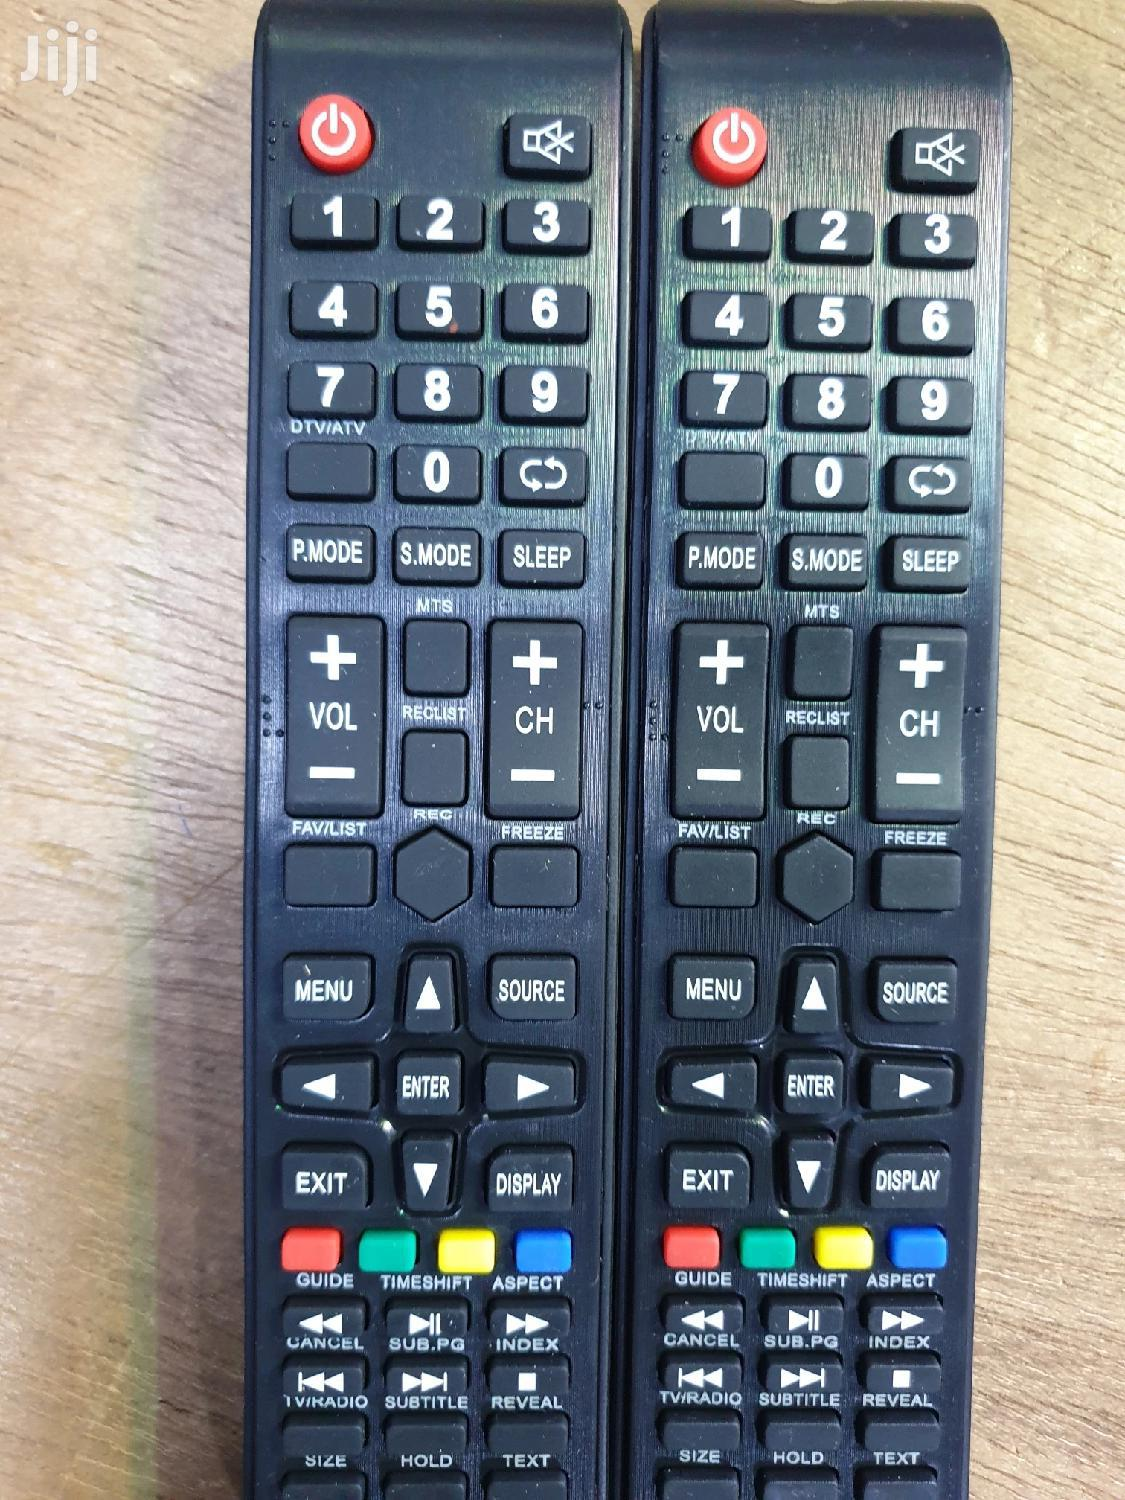 Bruhm TV Remote For Cool Price | Accessories & Supplies for Electronics for sale in Achimota, Greater Accra, Ghana